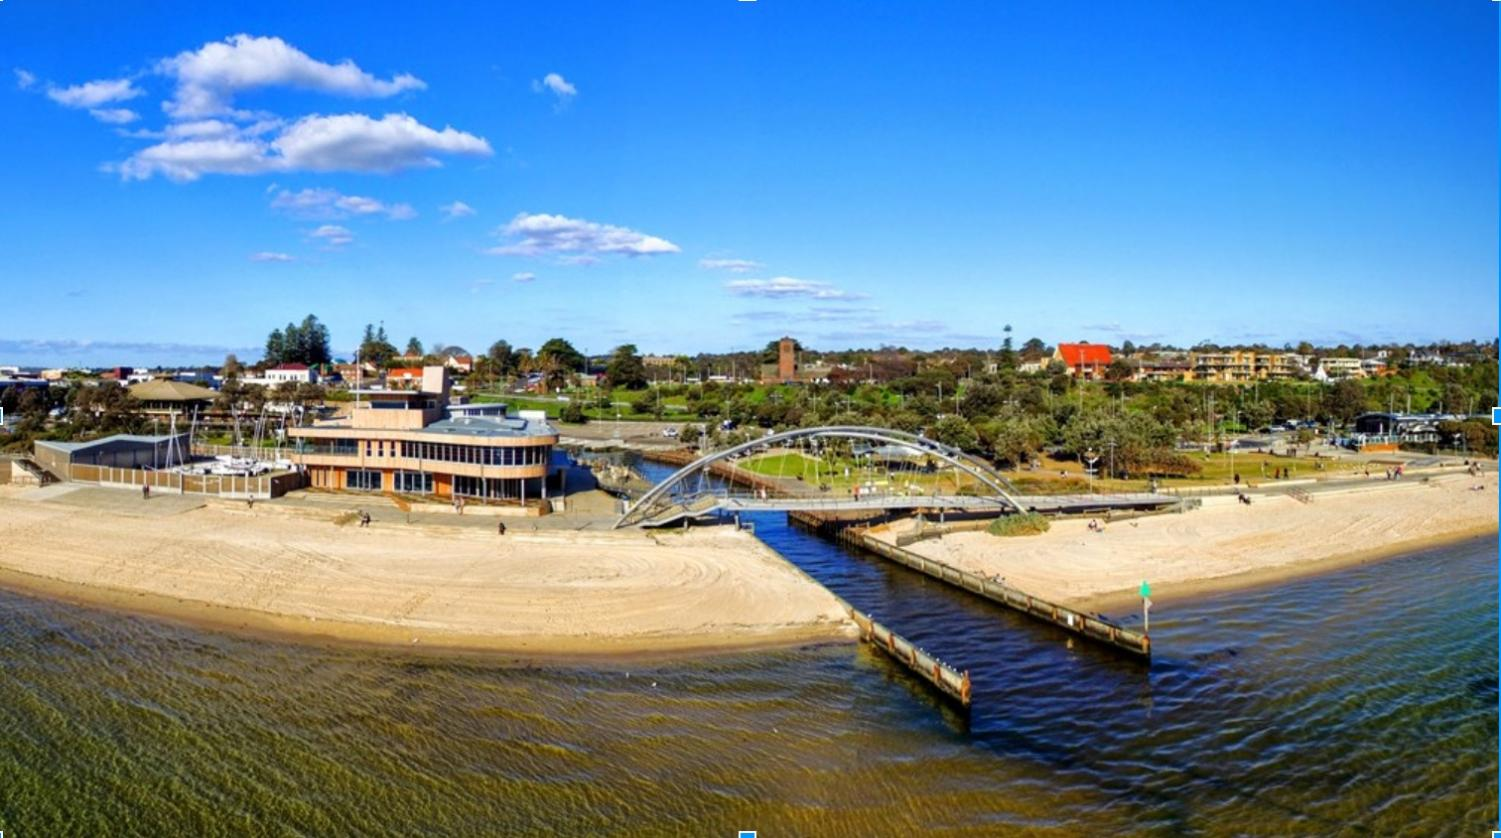 Frankston is a traditionally industrial city with plenty of leisure by the sea